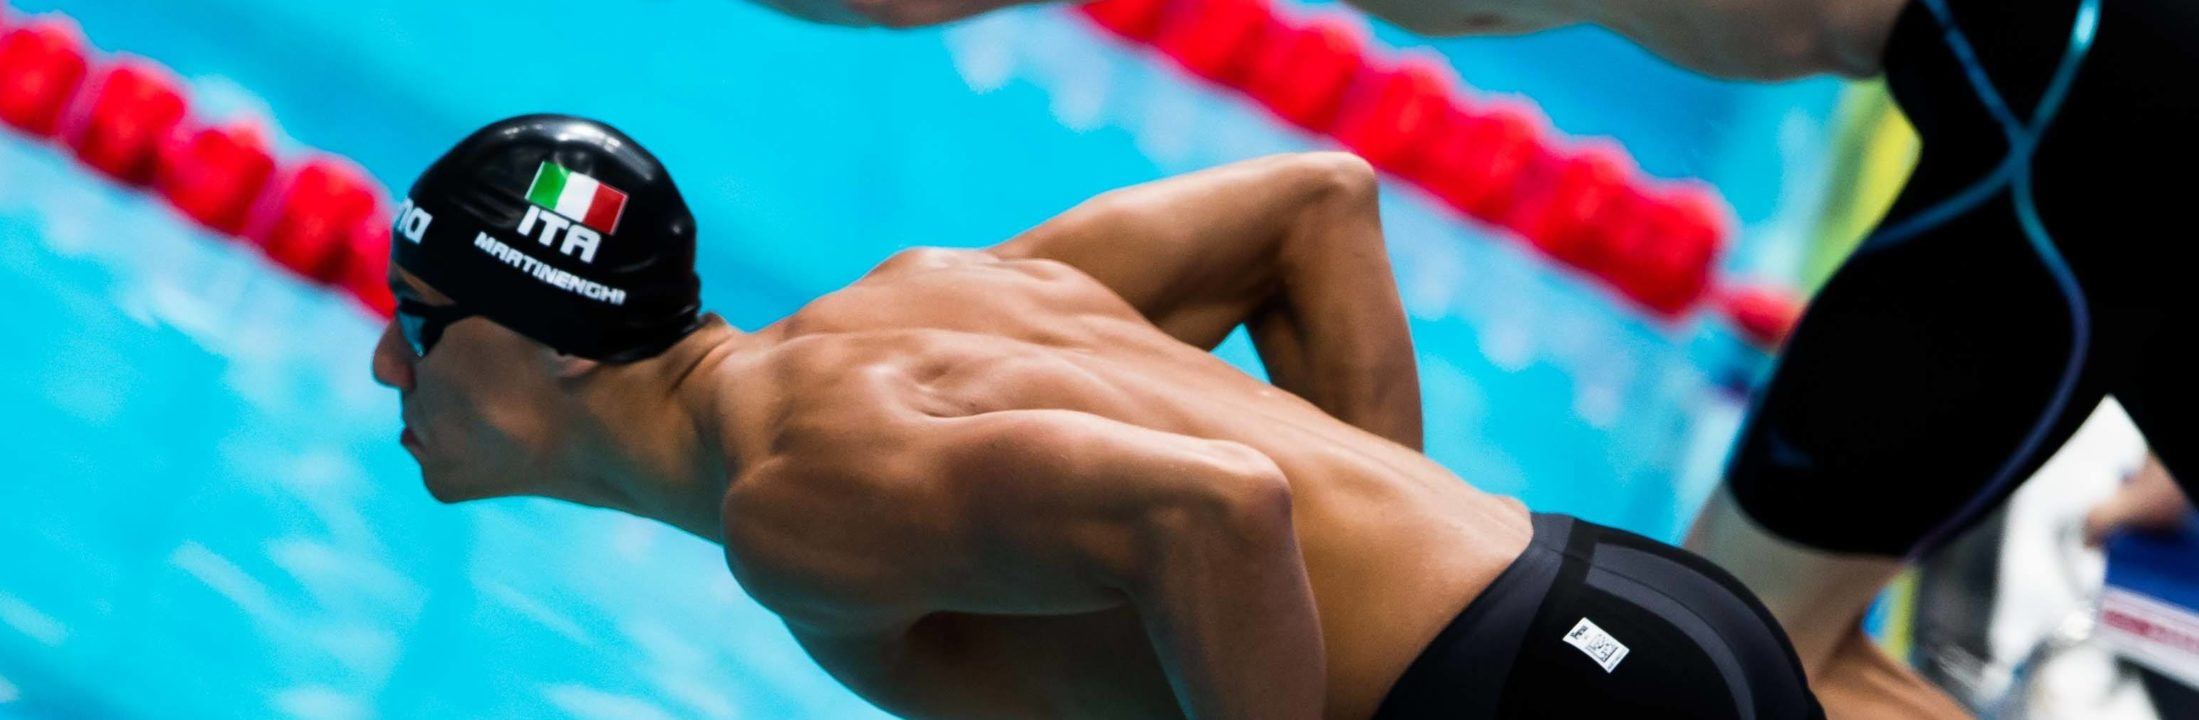 2017 World Junior Swimming Championships: All the Links You Need